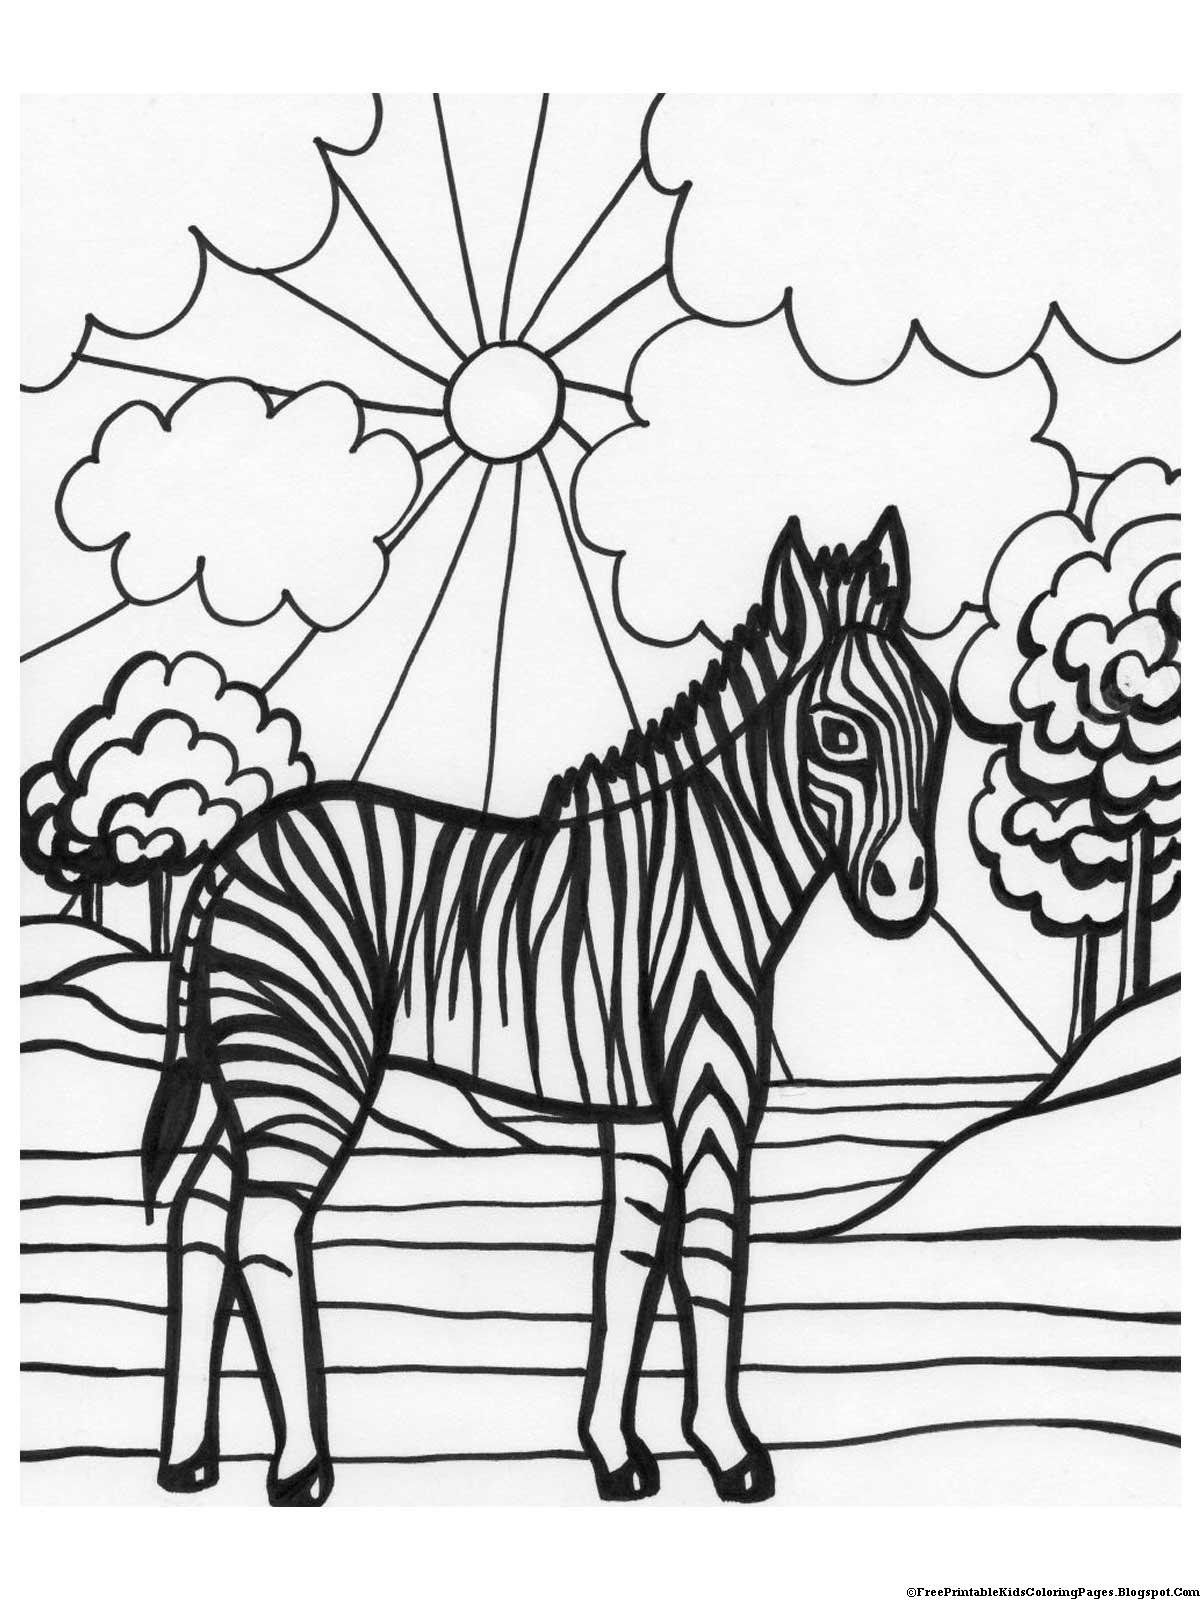 coloring pages from photos - photo#29